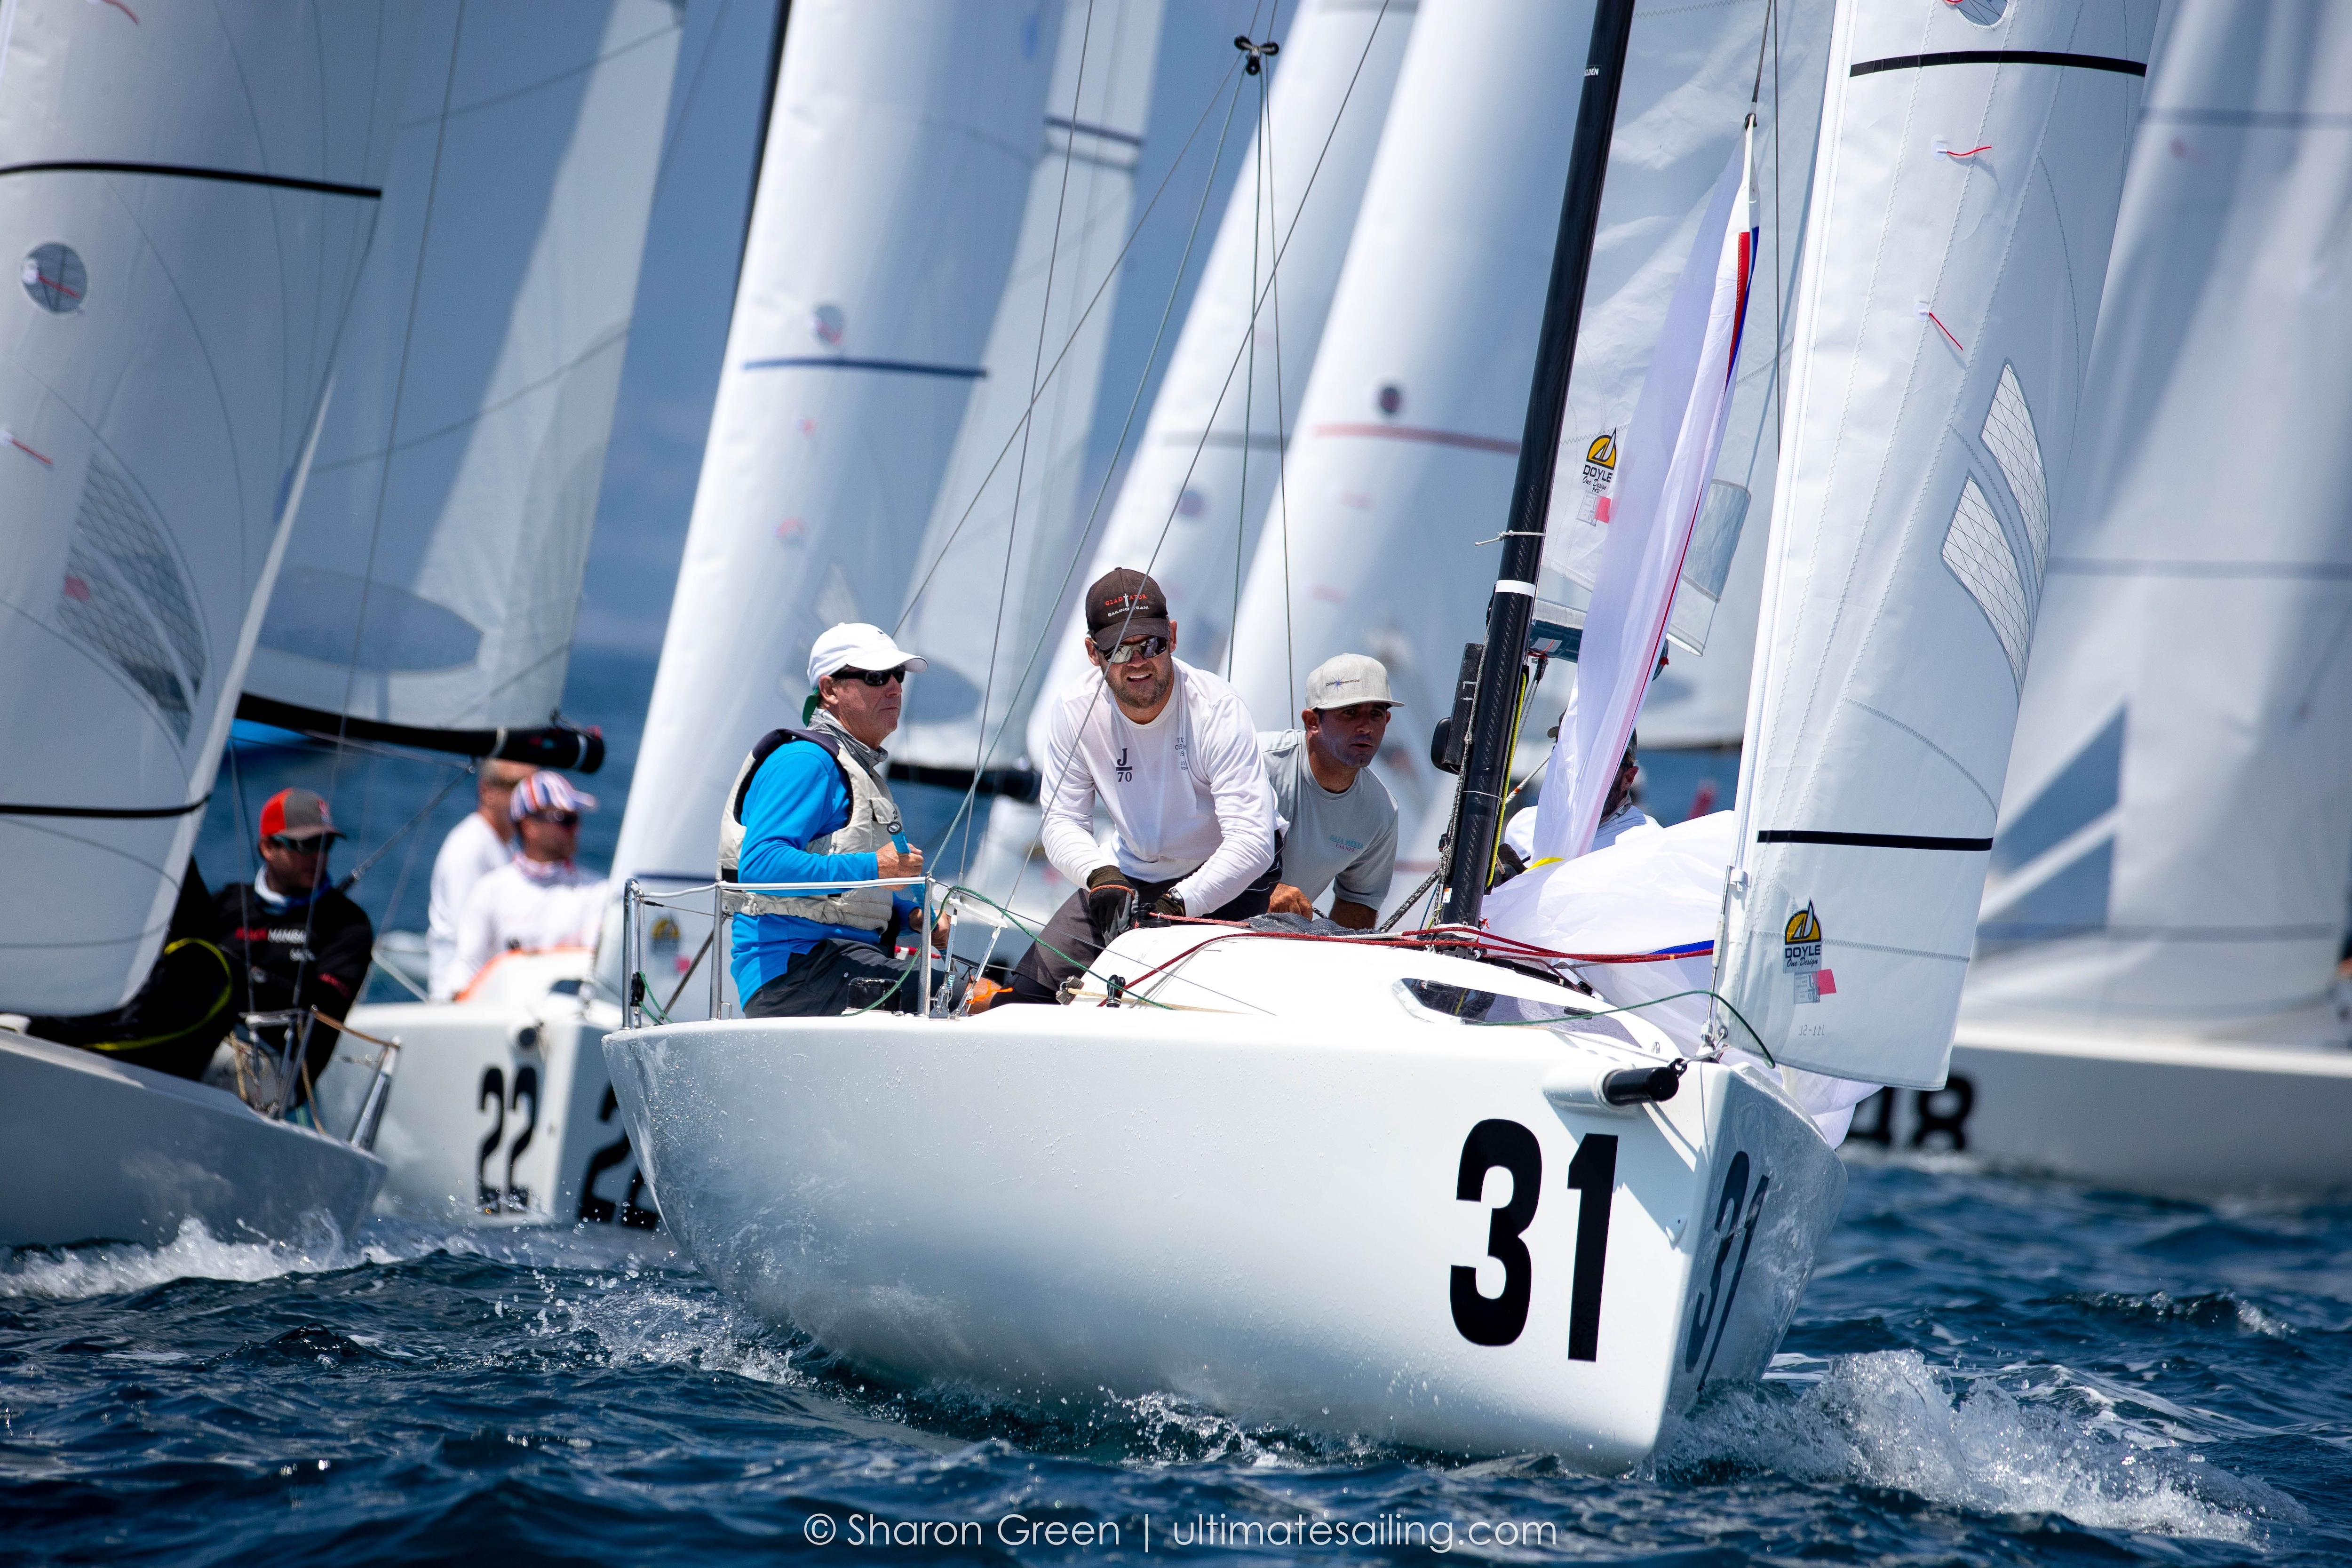 Peter Duncan's J/70 team on Relative Obscurity at the 2021 World Championships in Marina Del Rey.